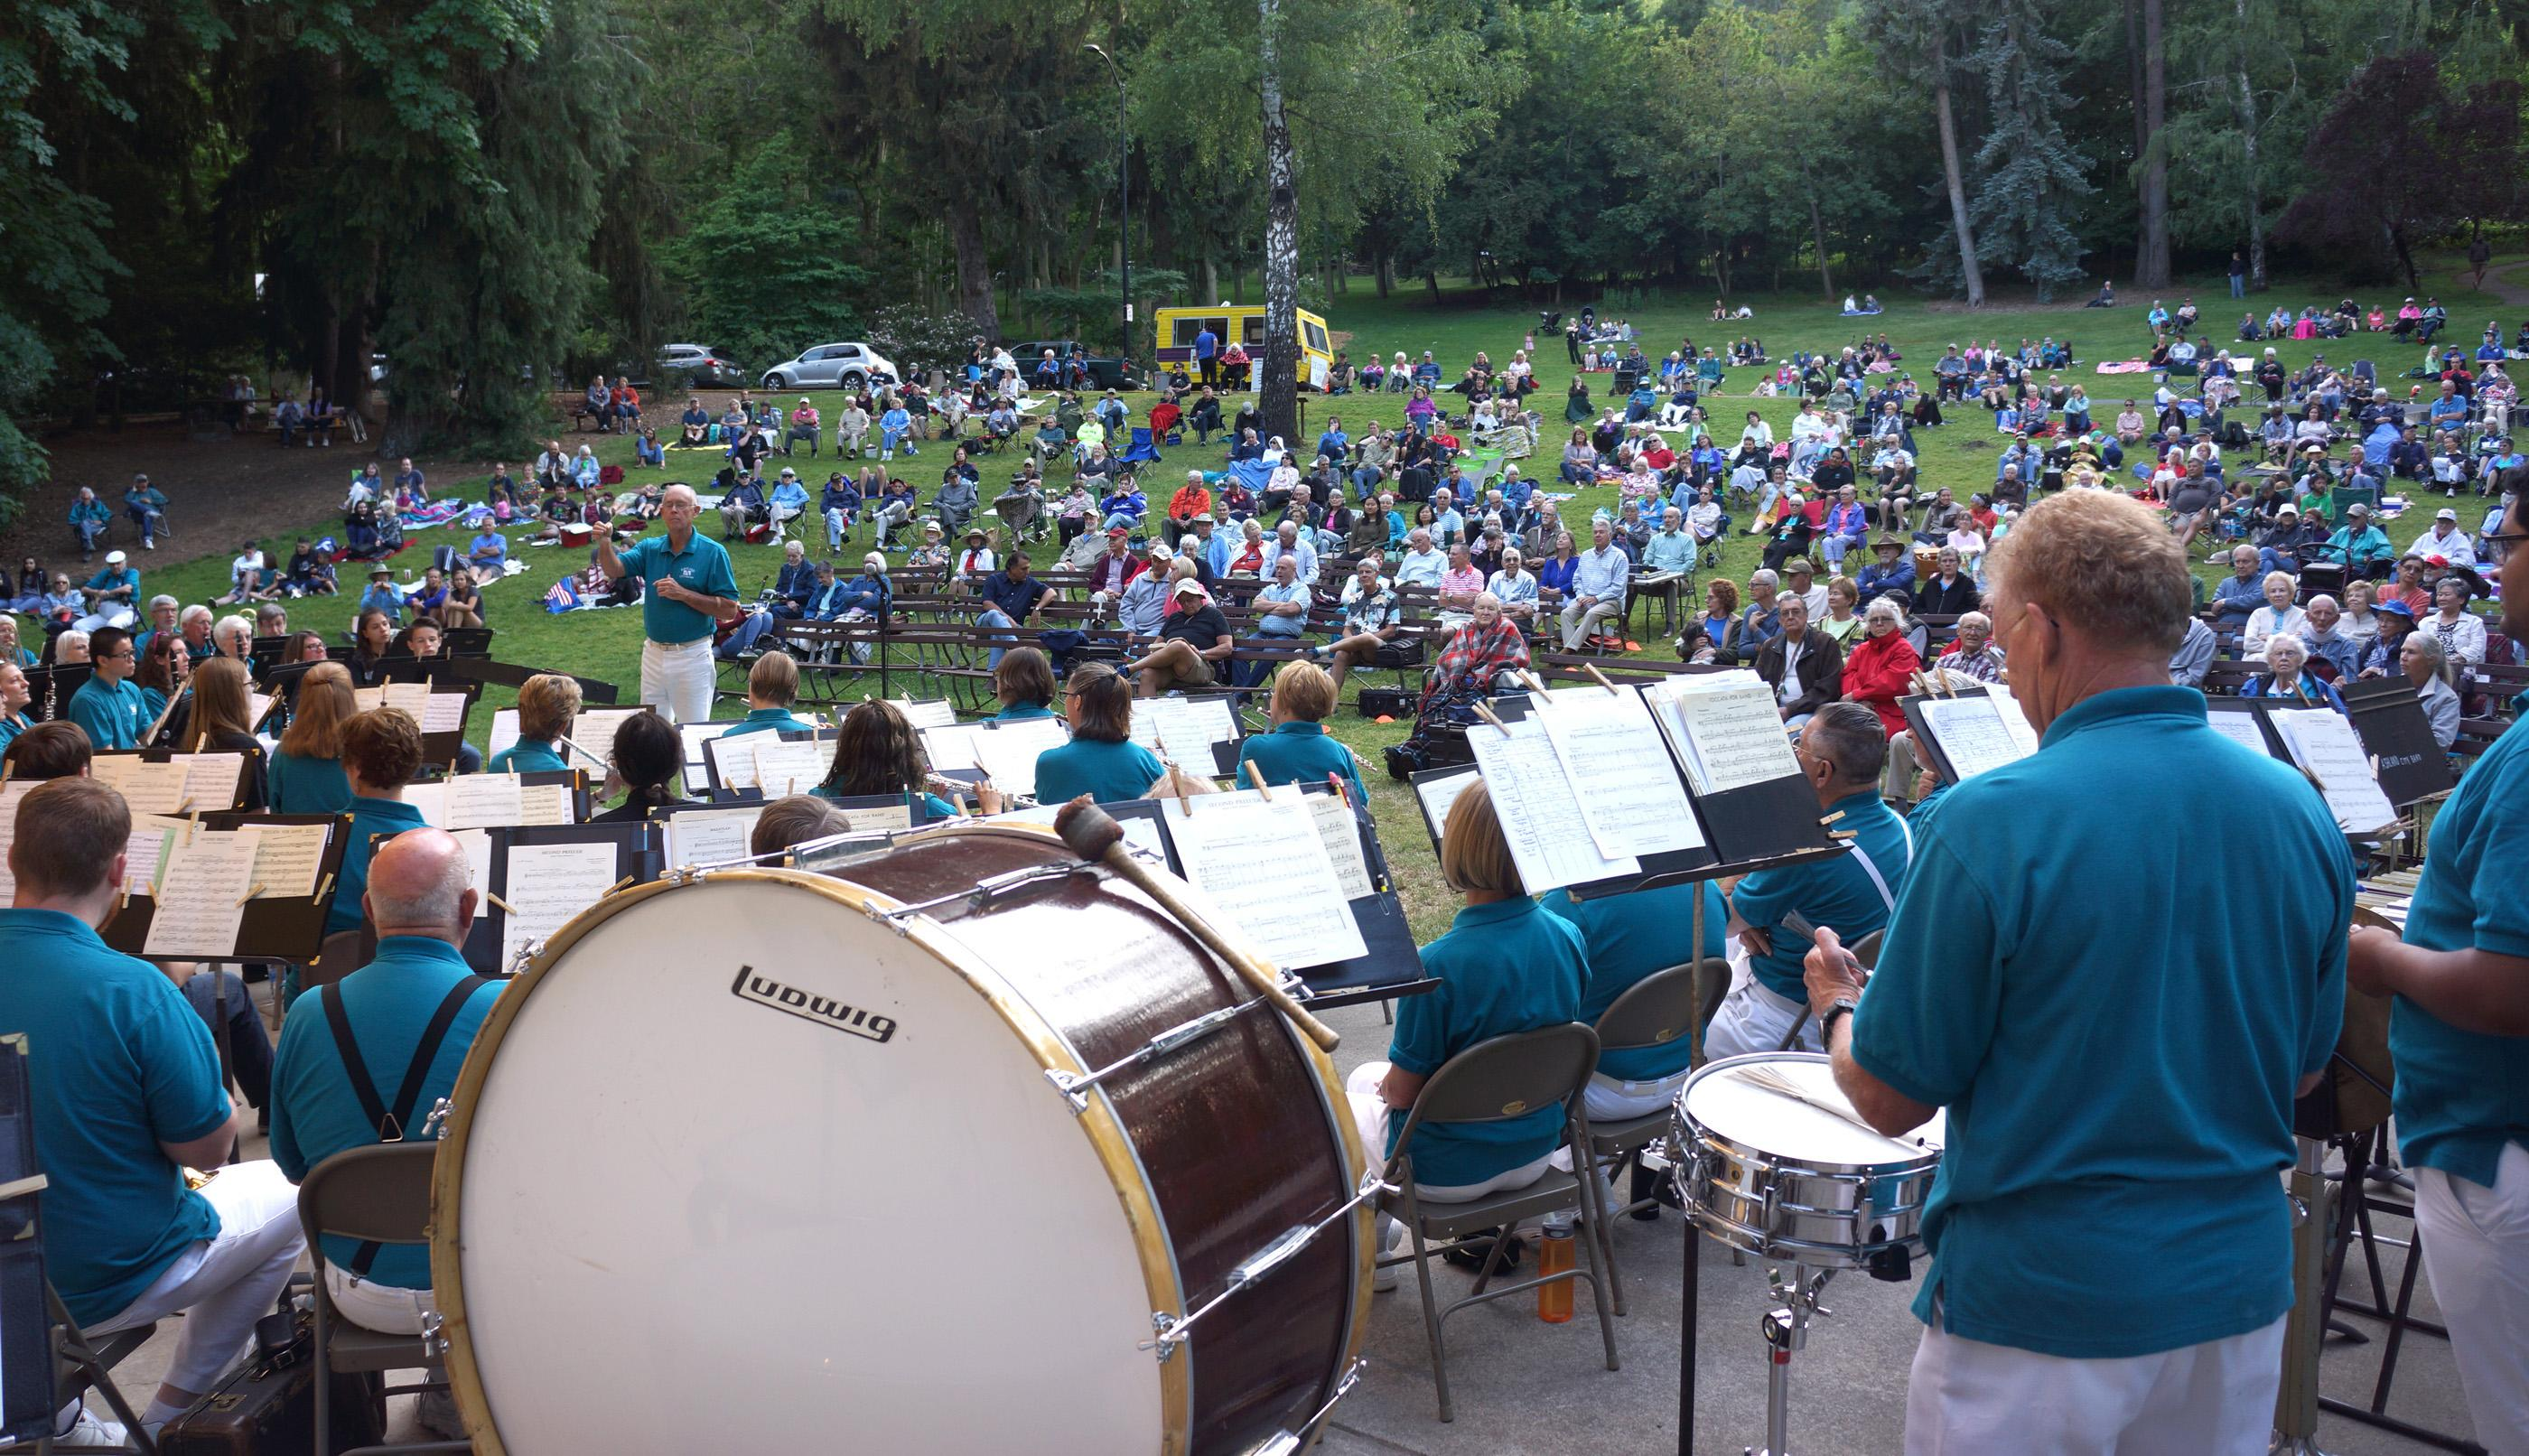 A big crowd enjoys the Ashland City Band perform at the Butler Bandshell in Lithia Park. (Photo by Jim Flint)